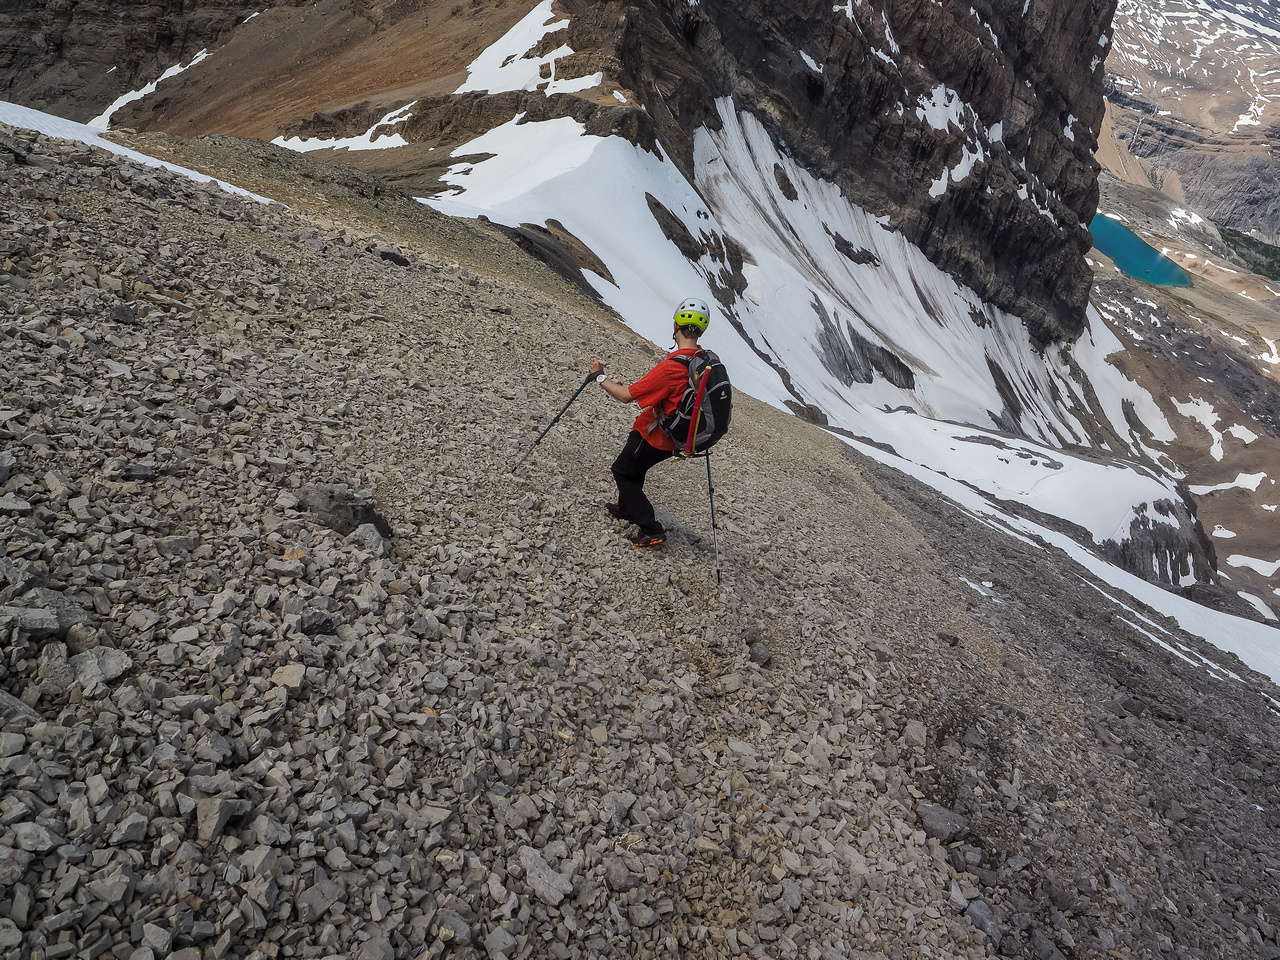 Down easy scree towards the even-better snow.